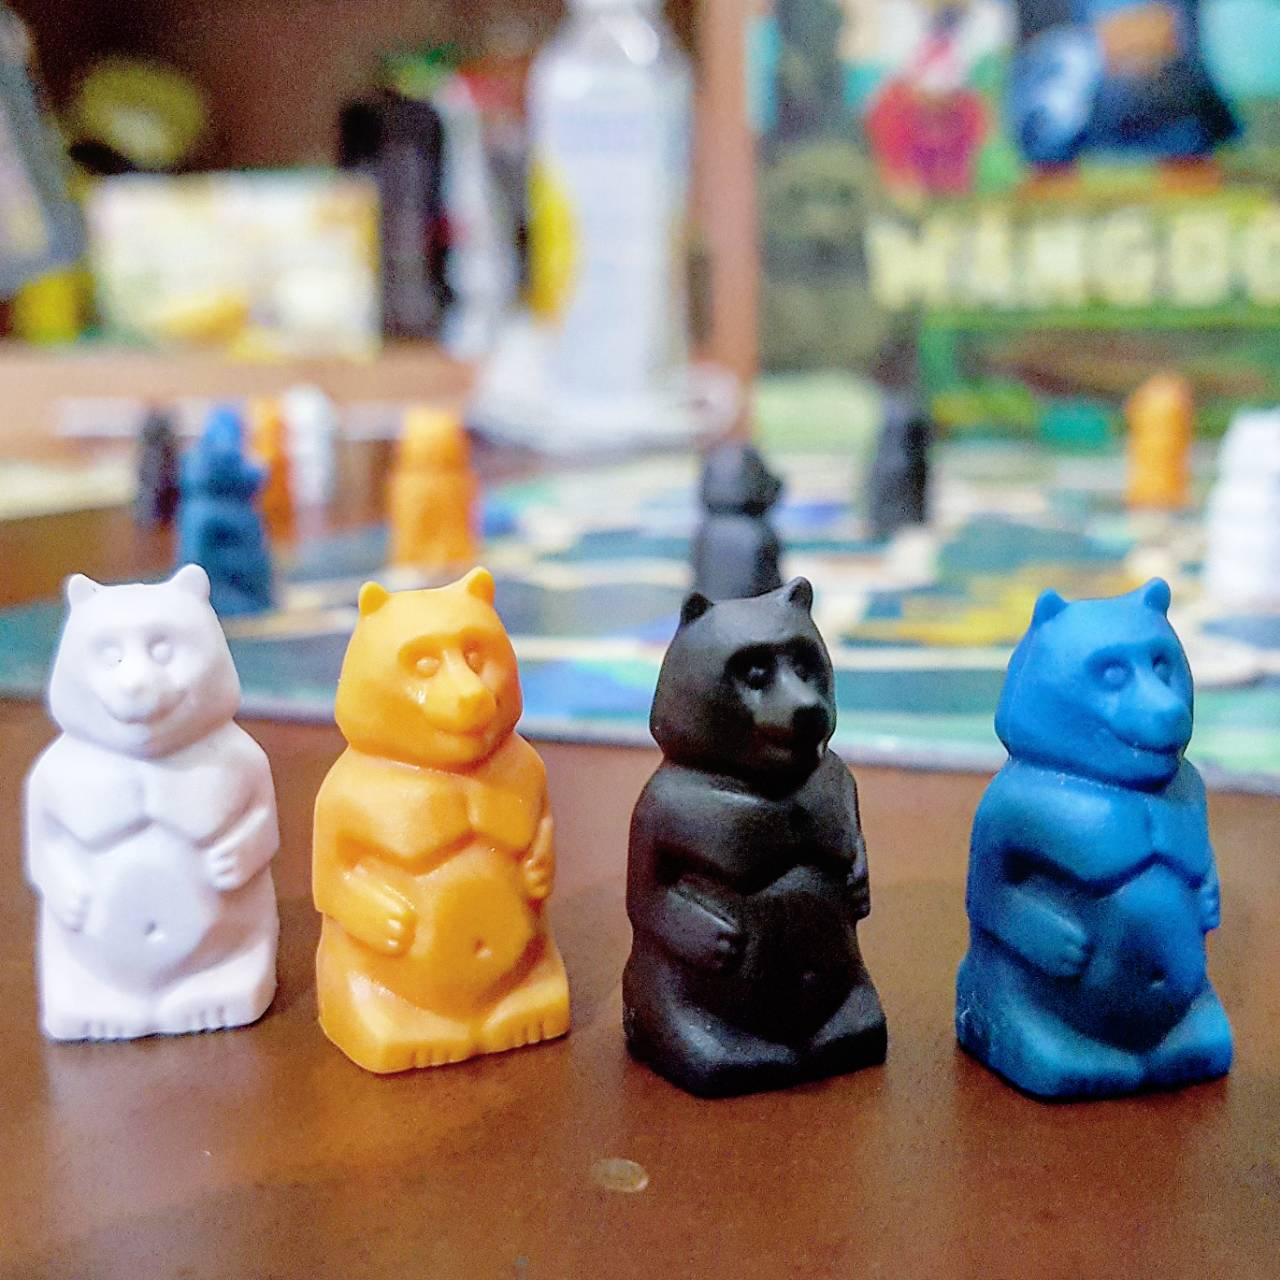 Wangdo: The Bear Kingdom Needs a King [Review]